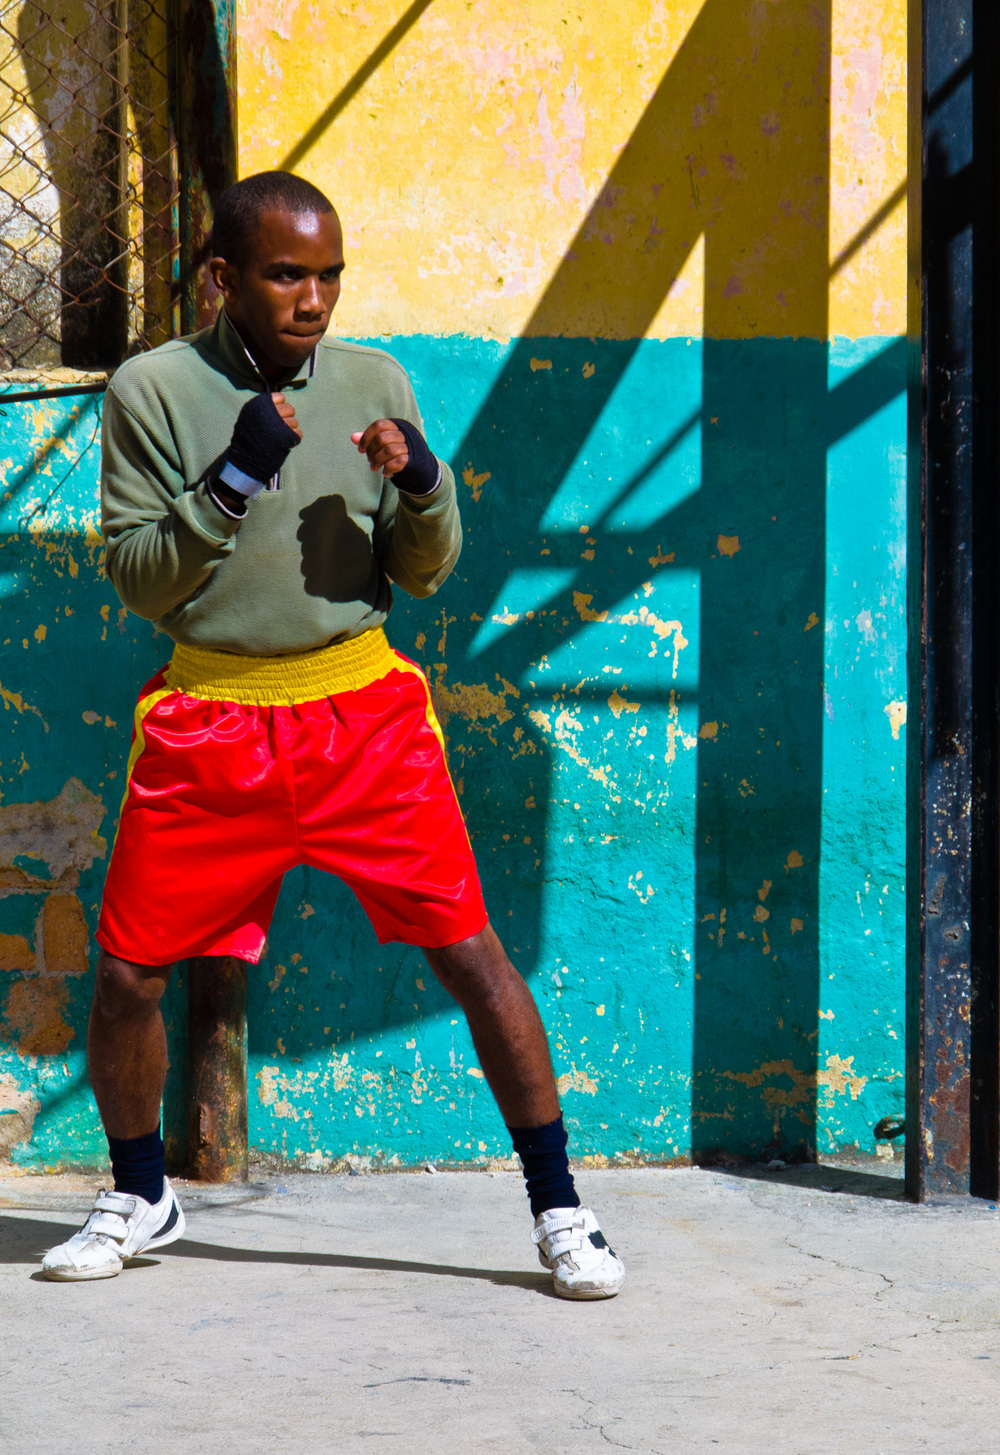 Bill_Barnett_Boxing Practice in Havana.jpg